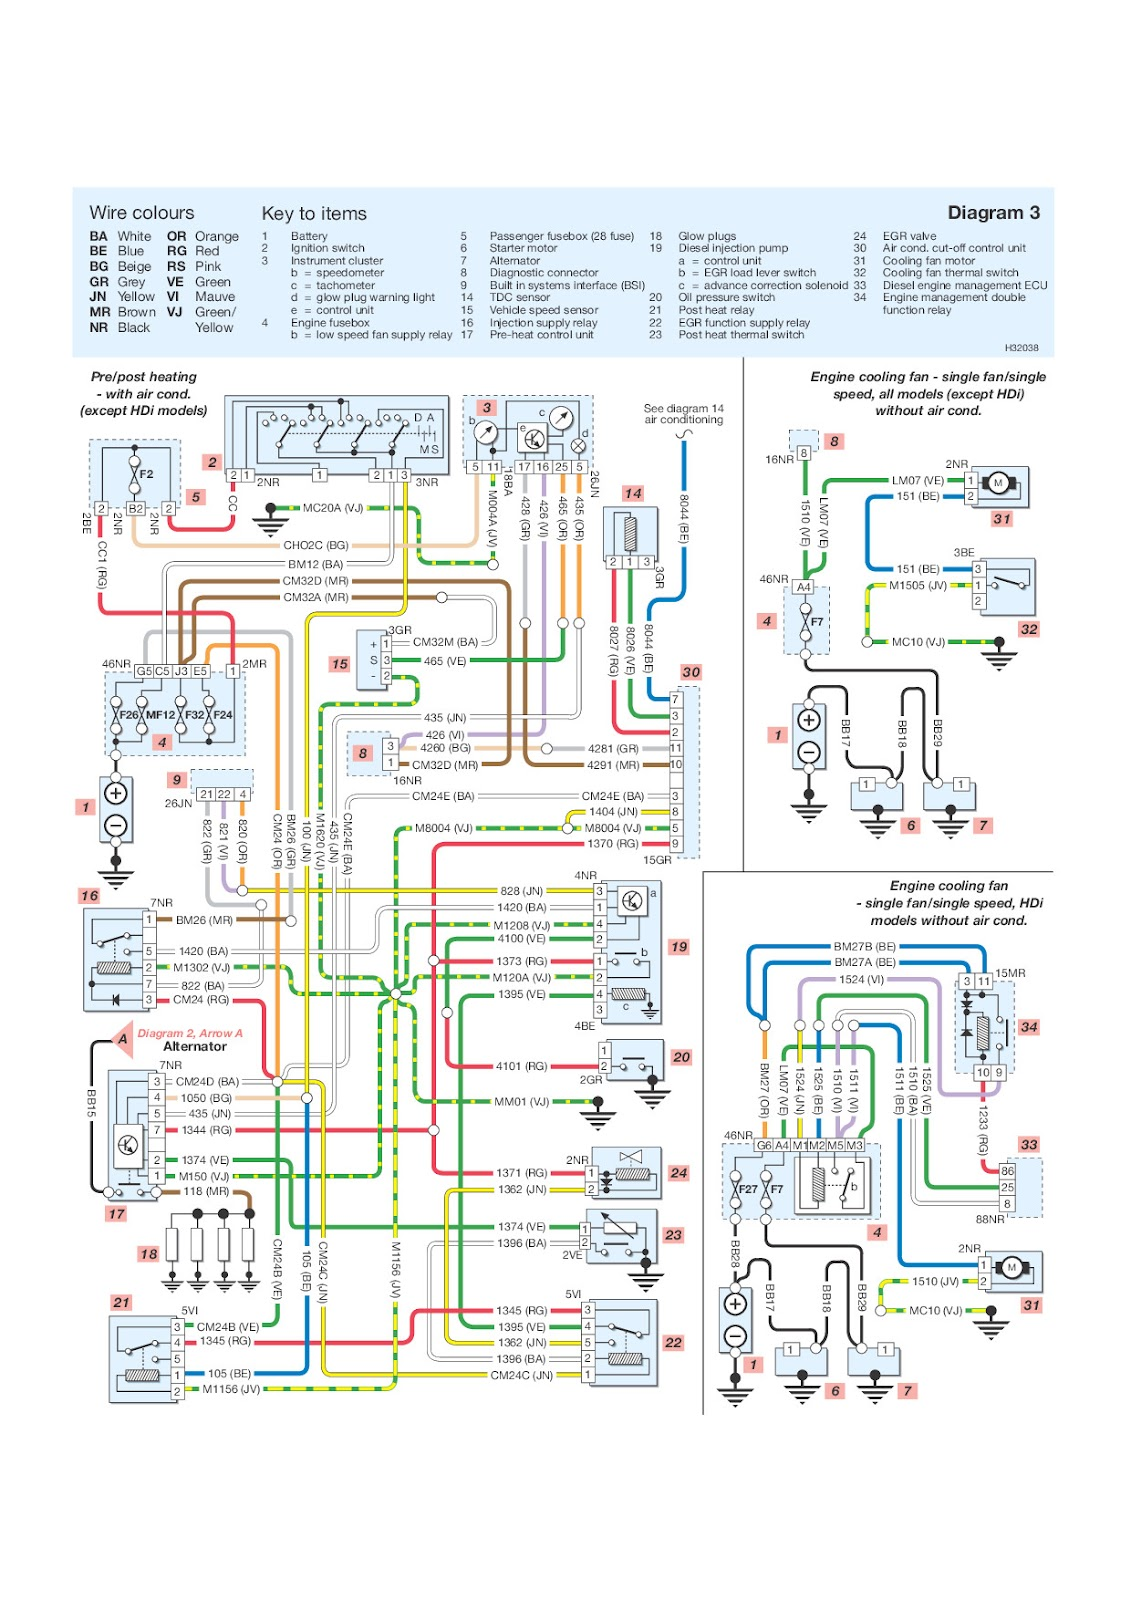 Peugeot Engine Diagrams - All Wiring Diagram on active guitar pick up circuit diagram, emg 89 wiring, emg bass pickup wiring, emg 81 wiring and white, emg testing diagram, emg body diagram, emg wiring guide,